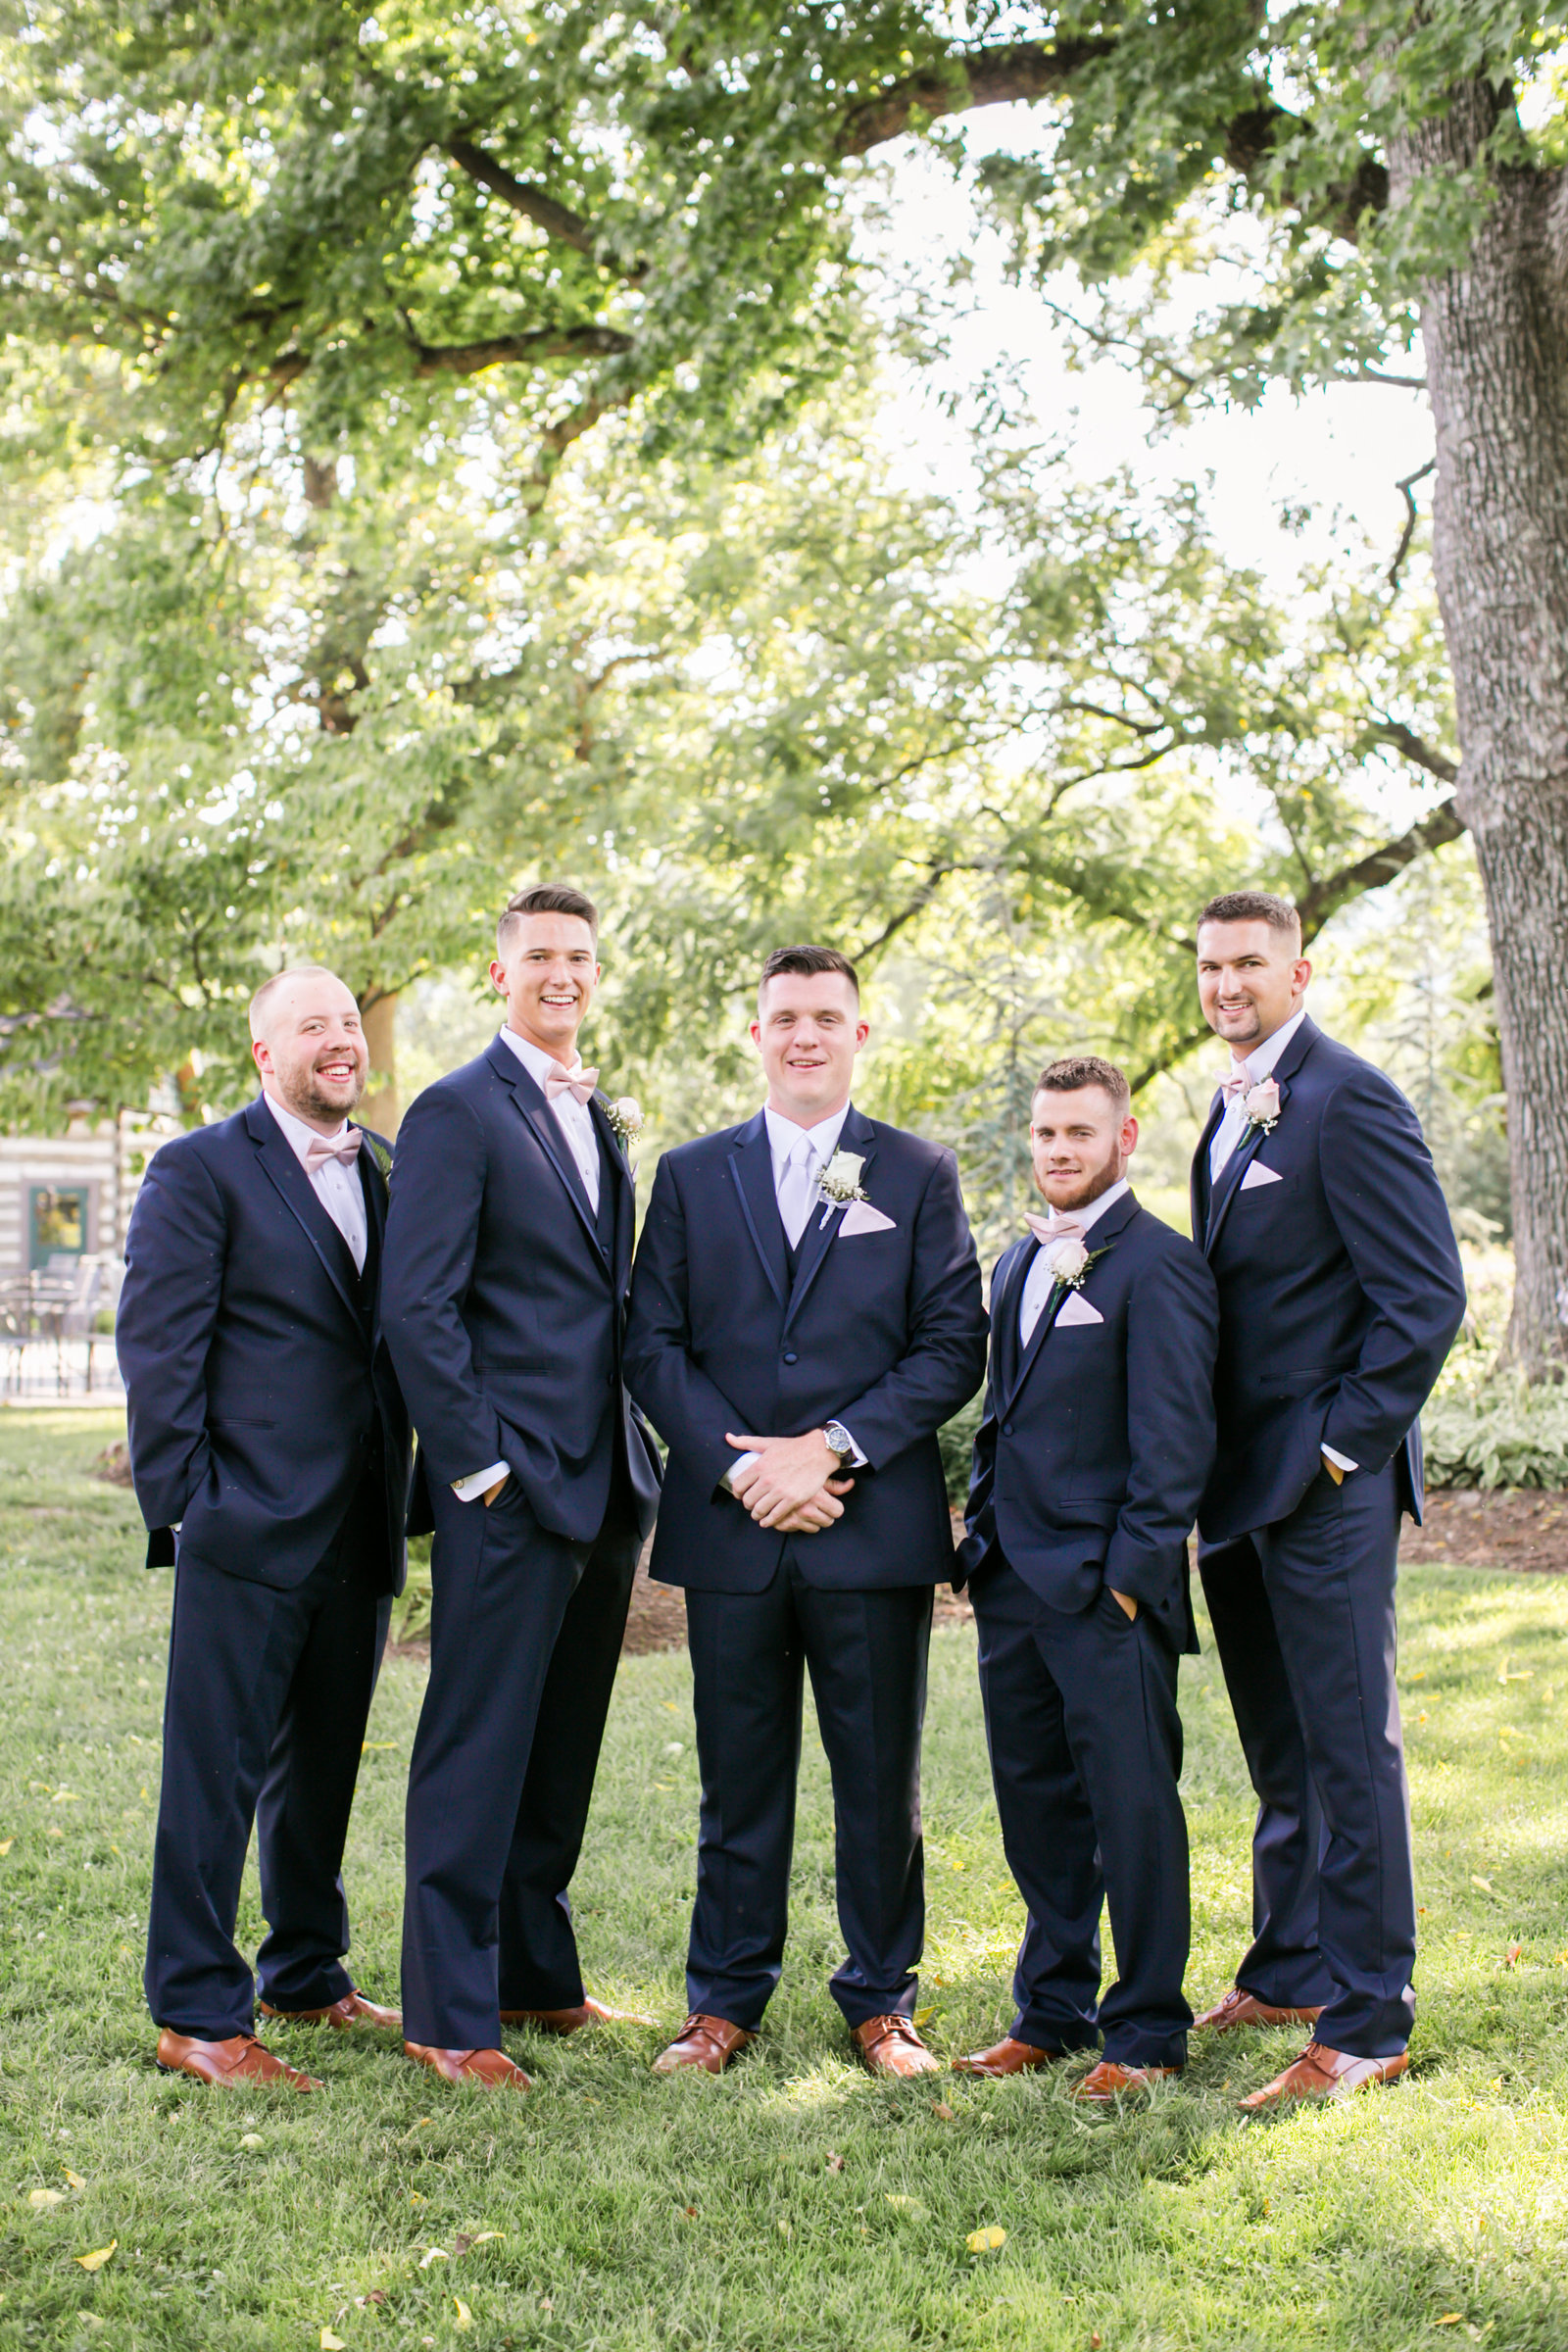 Whitehall_Estate_Wedding_Photographer_Friske387 copy